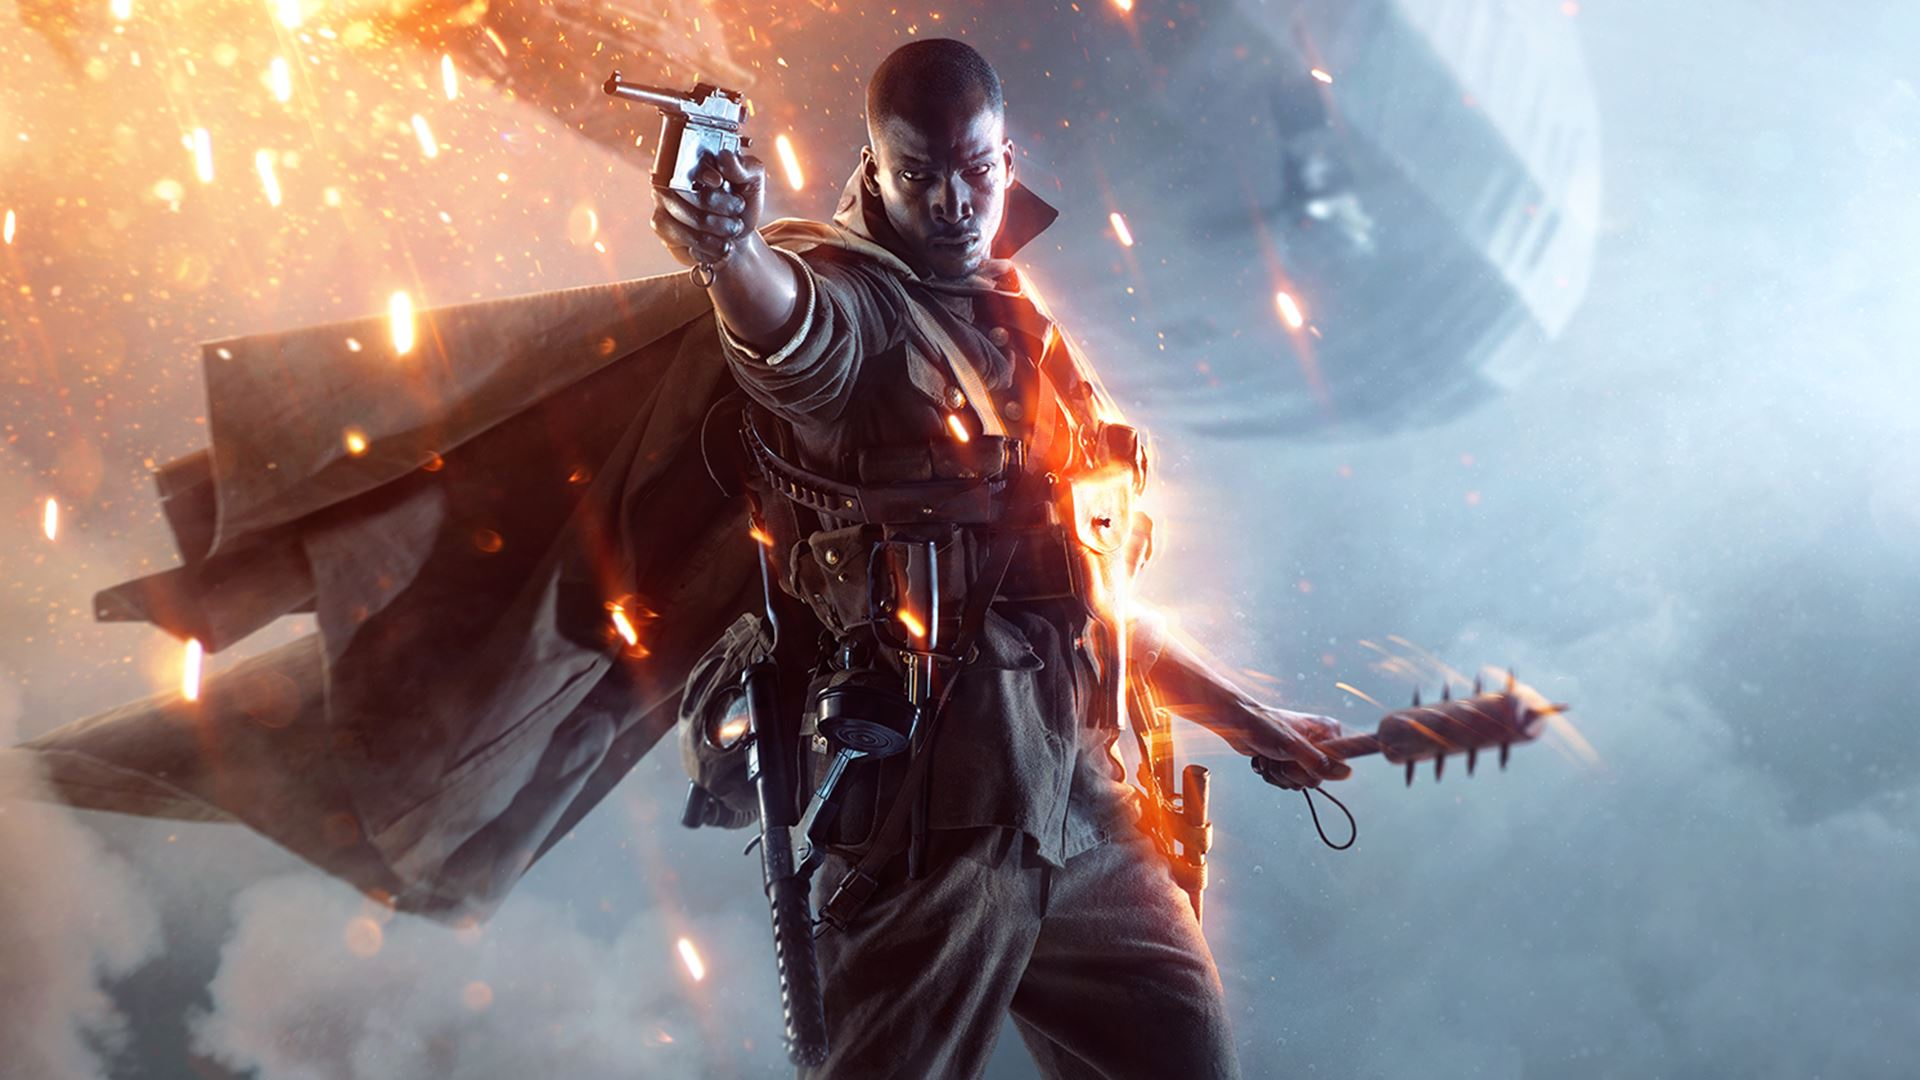 DICE to launch Premium Friends feature for Battlefield 1